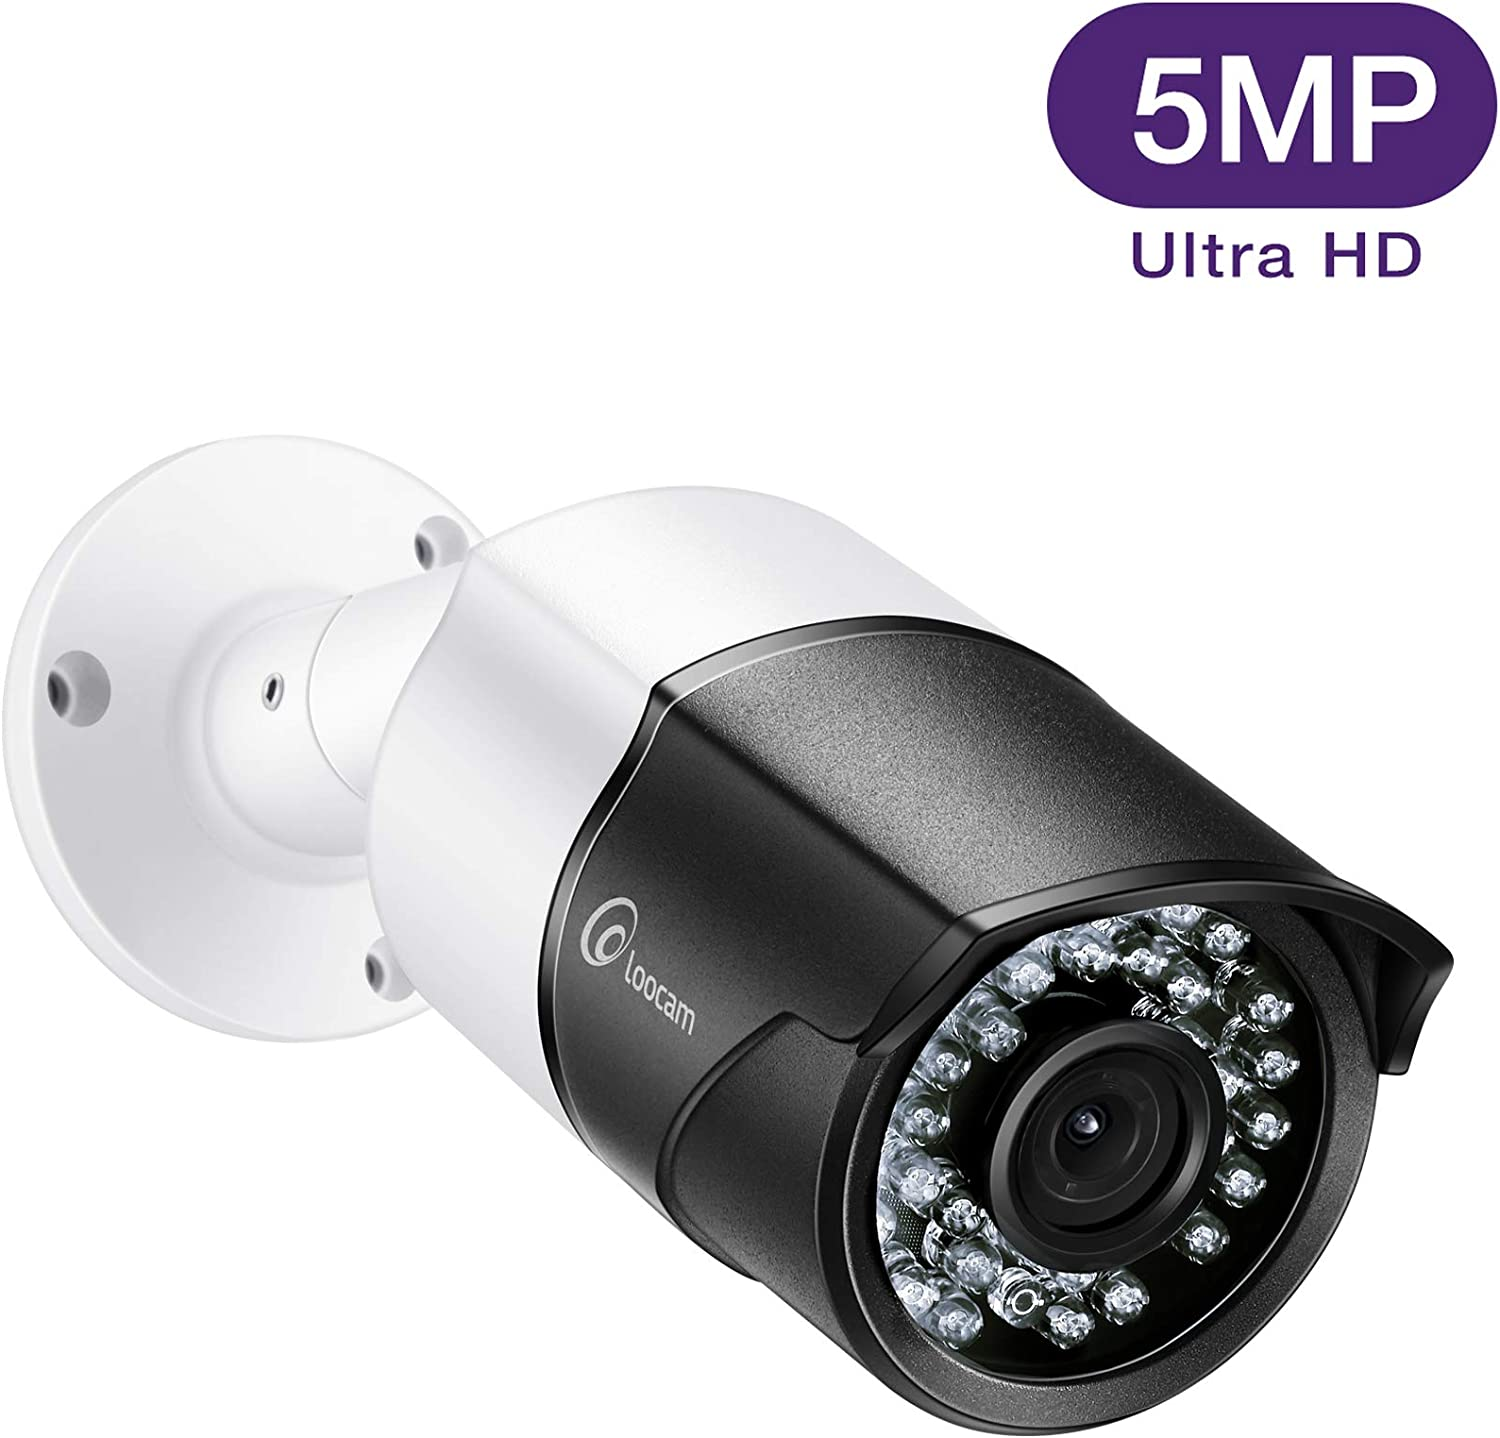 Loocam HD 5MP 2592×1920 Security Camera Outdoor Indoor, Video Surveillance Home Metal Housing CCTV Bullet Camera, 150ft EXIR Night Vision with Wide Angle, IP67 Weatherproof, Black and White